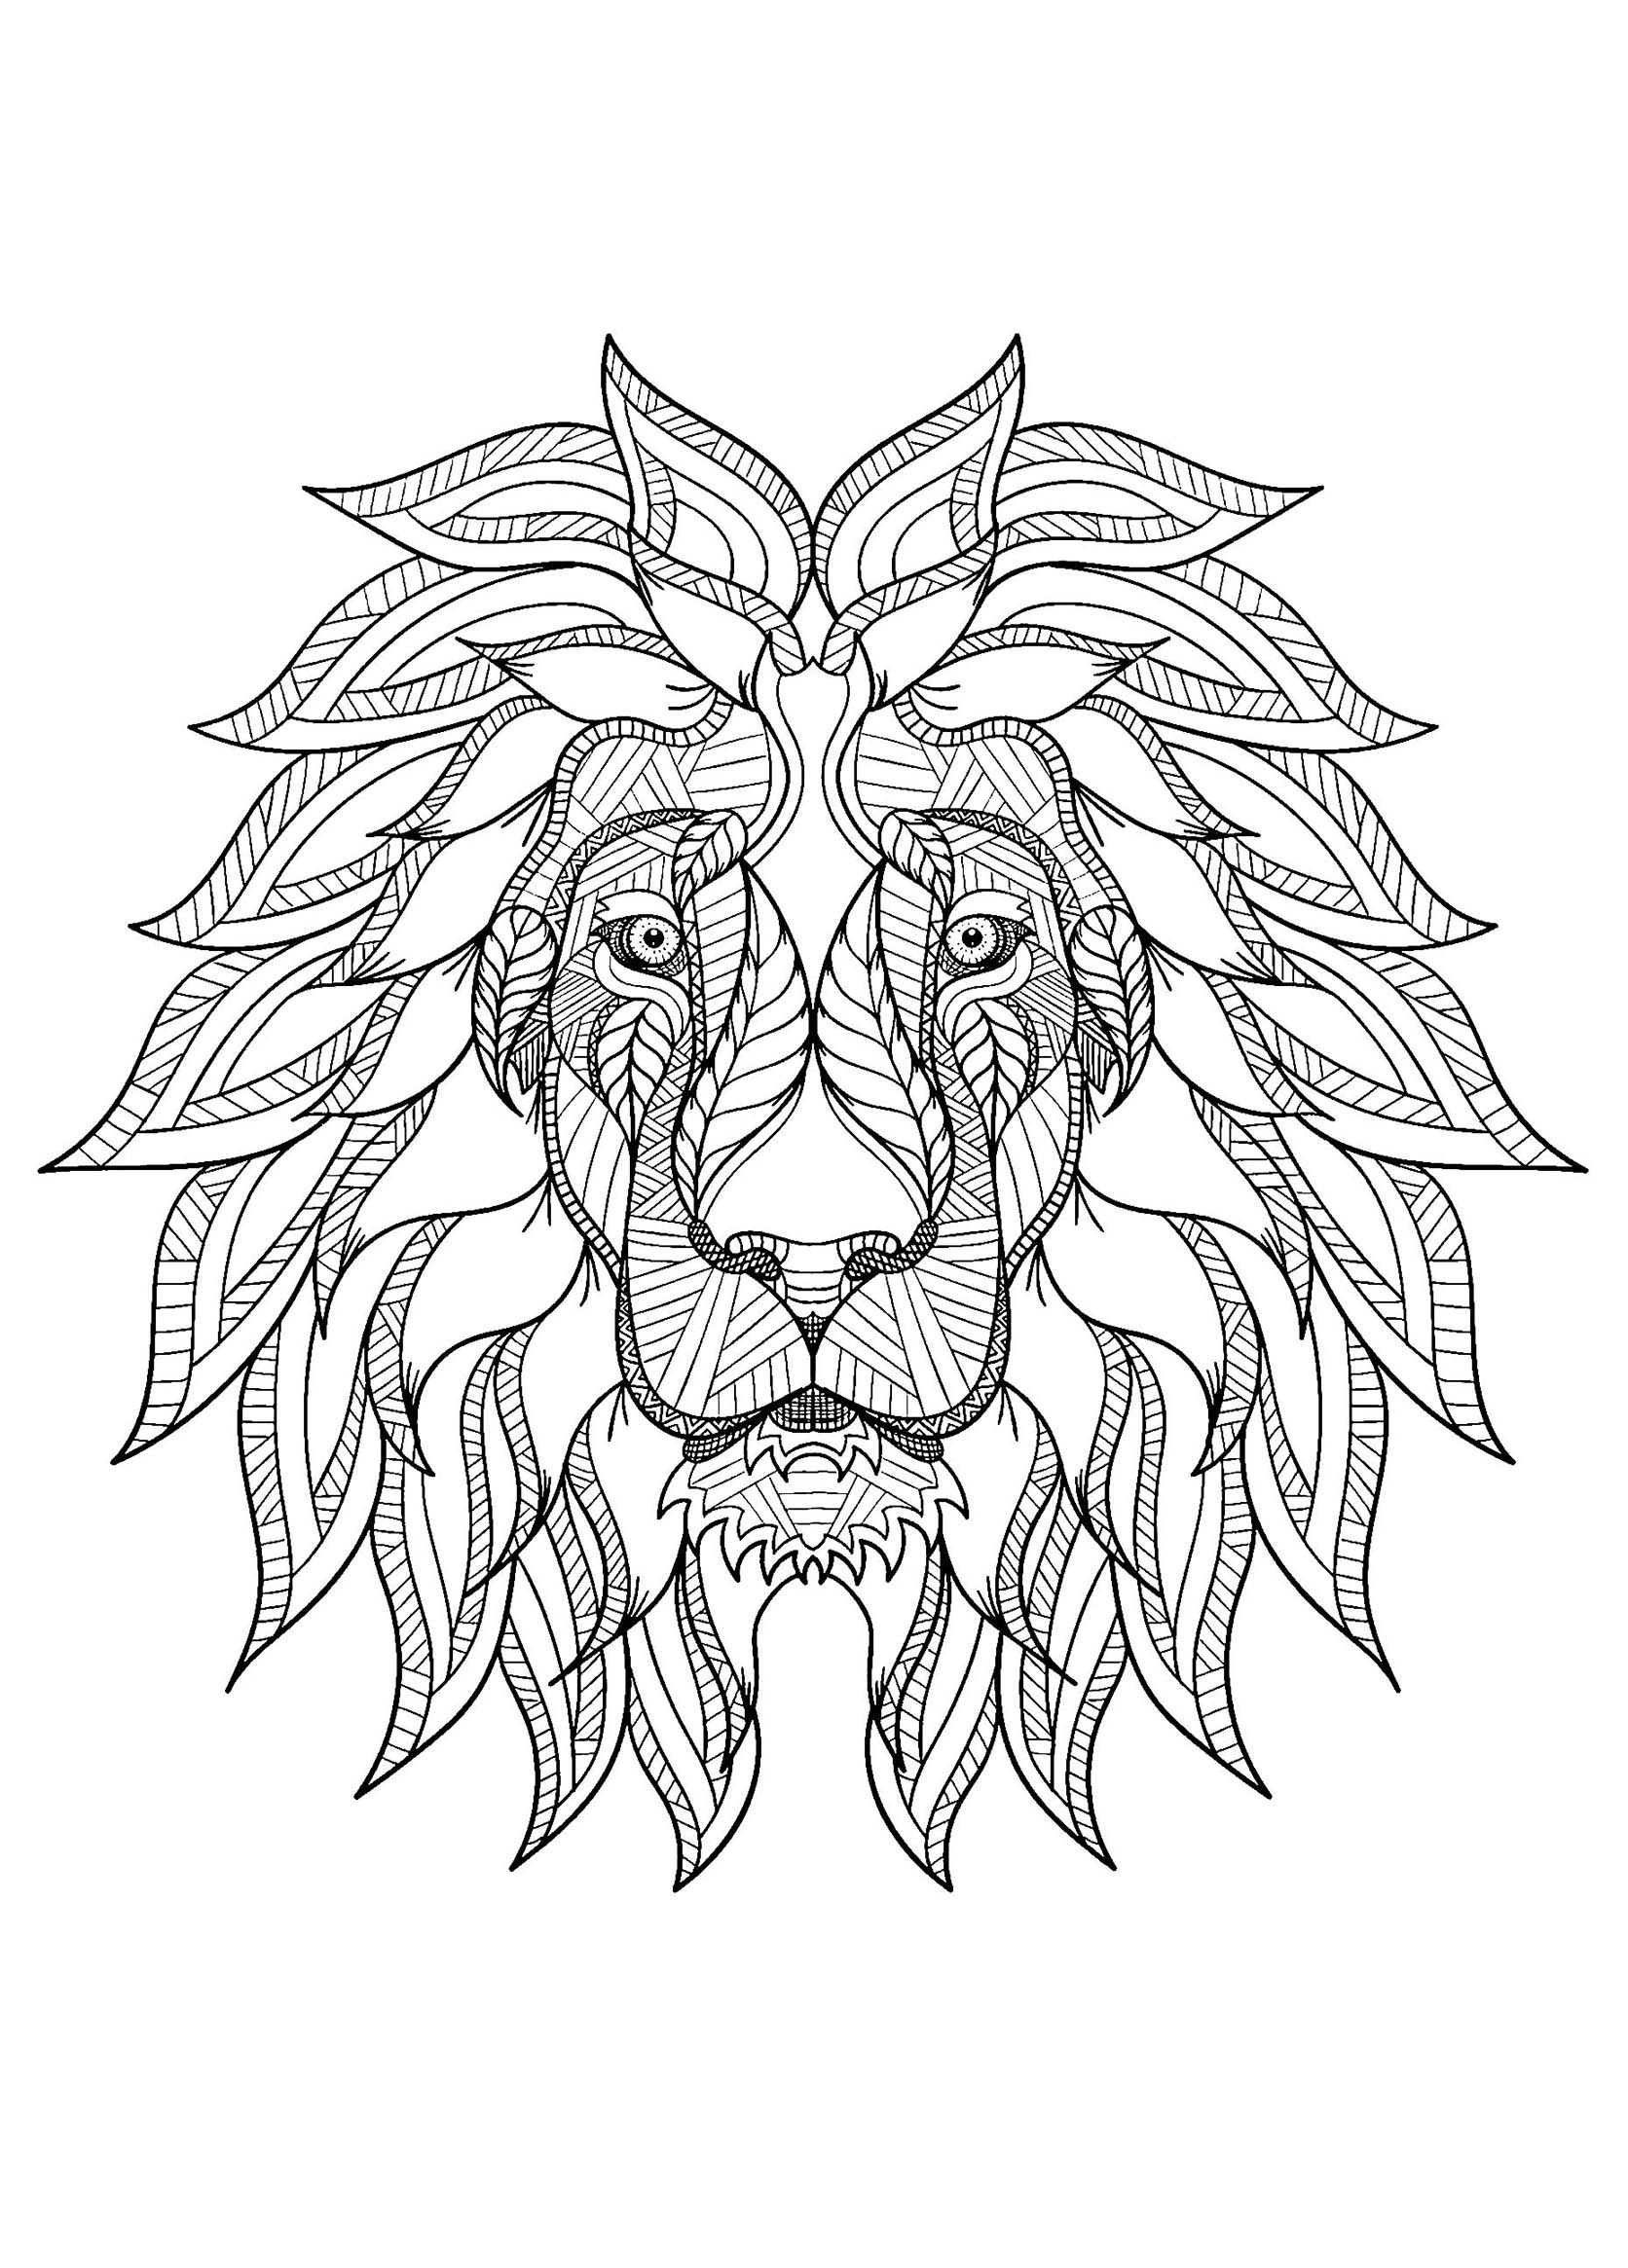 coloring pages : Printable Pictures For Children Fresh Coloring ... | 2330x1672